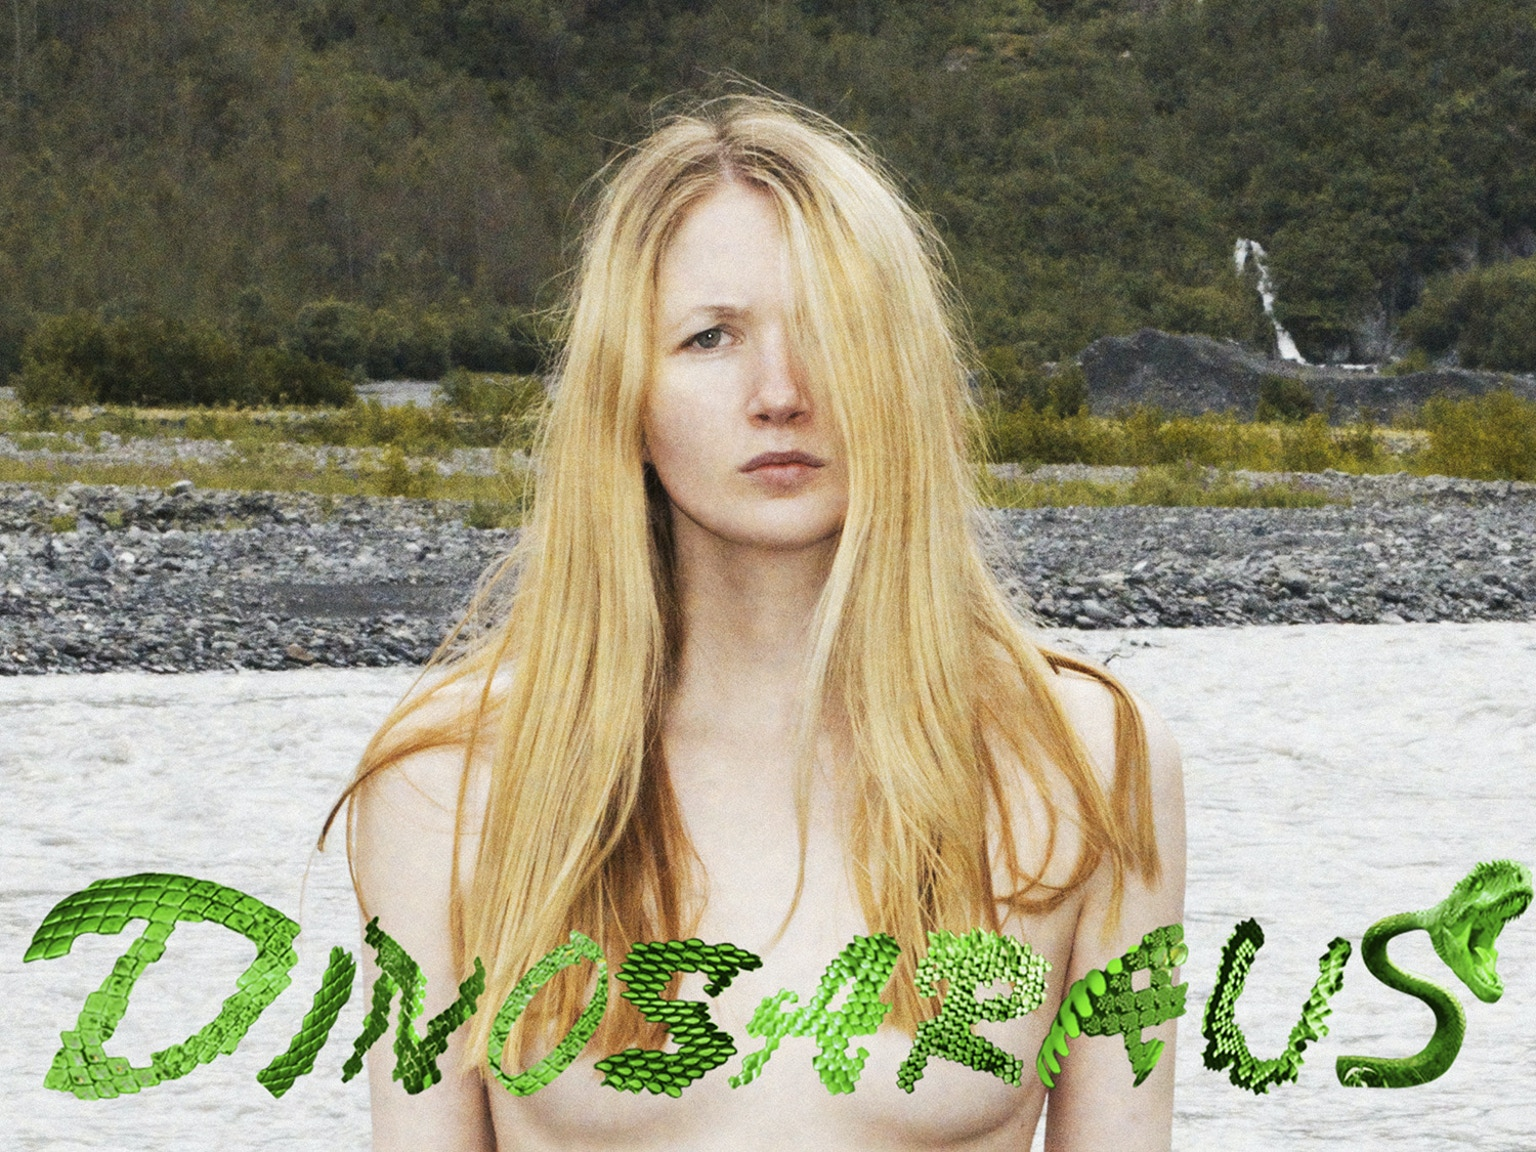 Live WITH nature - Exhibition by Dinosaraus by Dinosaraus